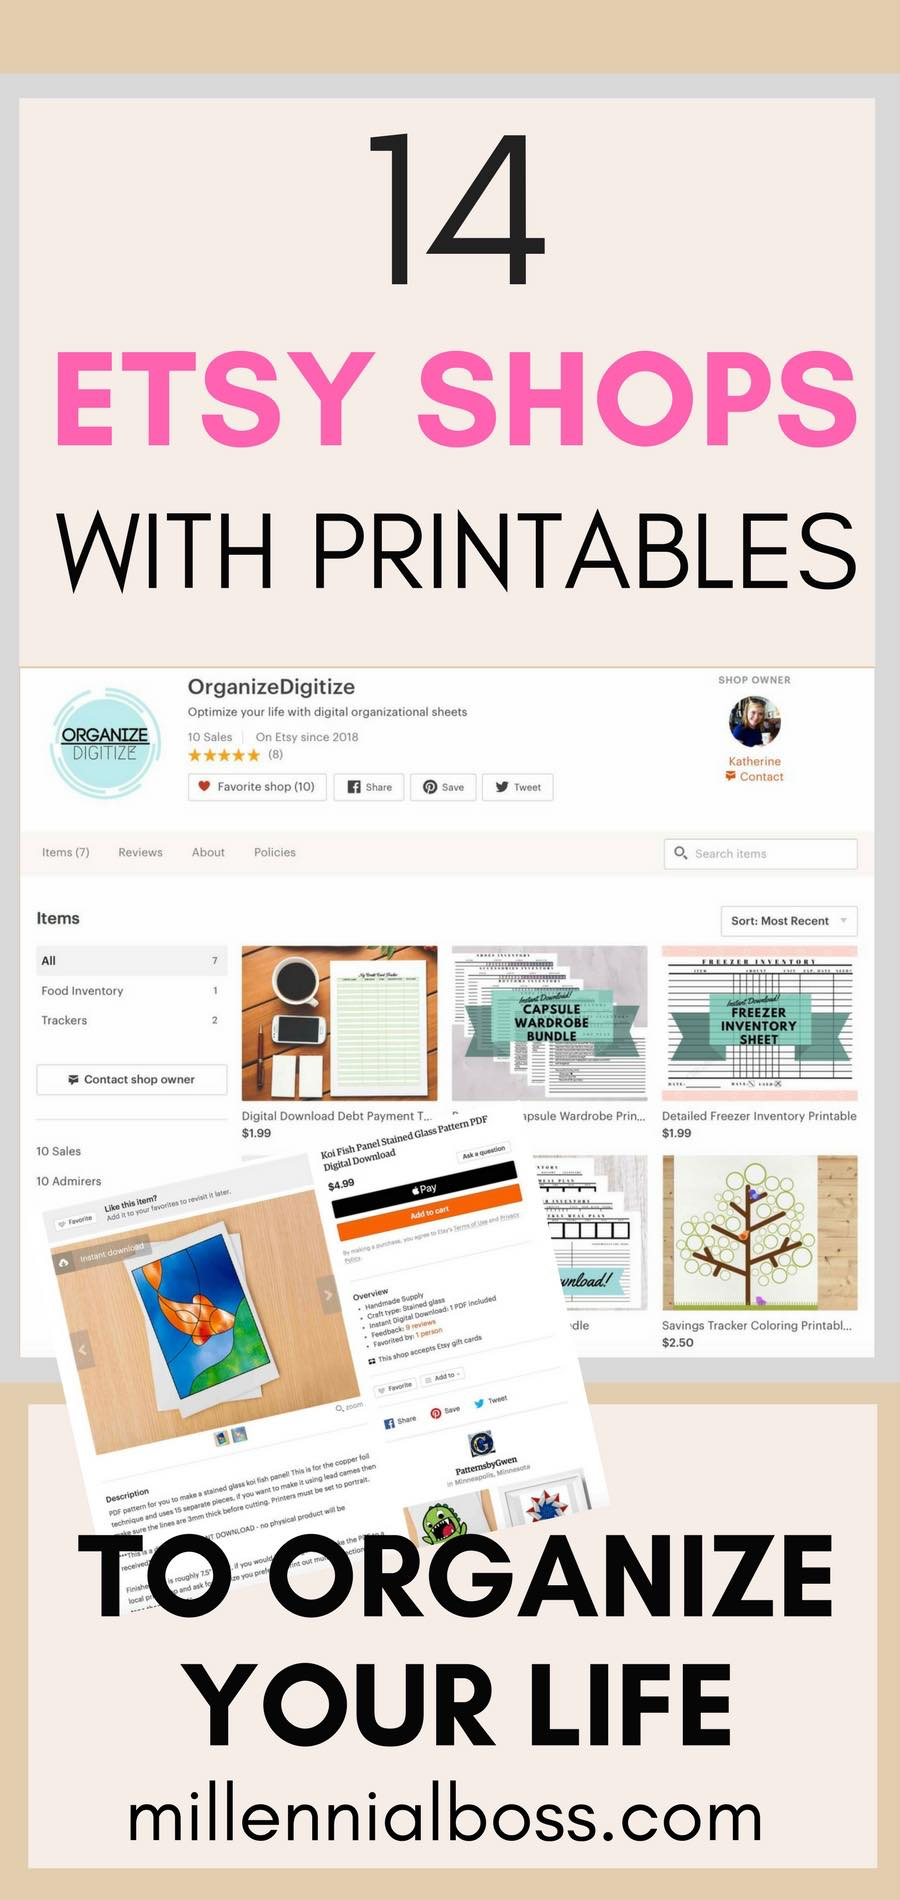 etsy shops with printables list